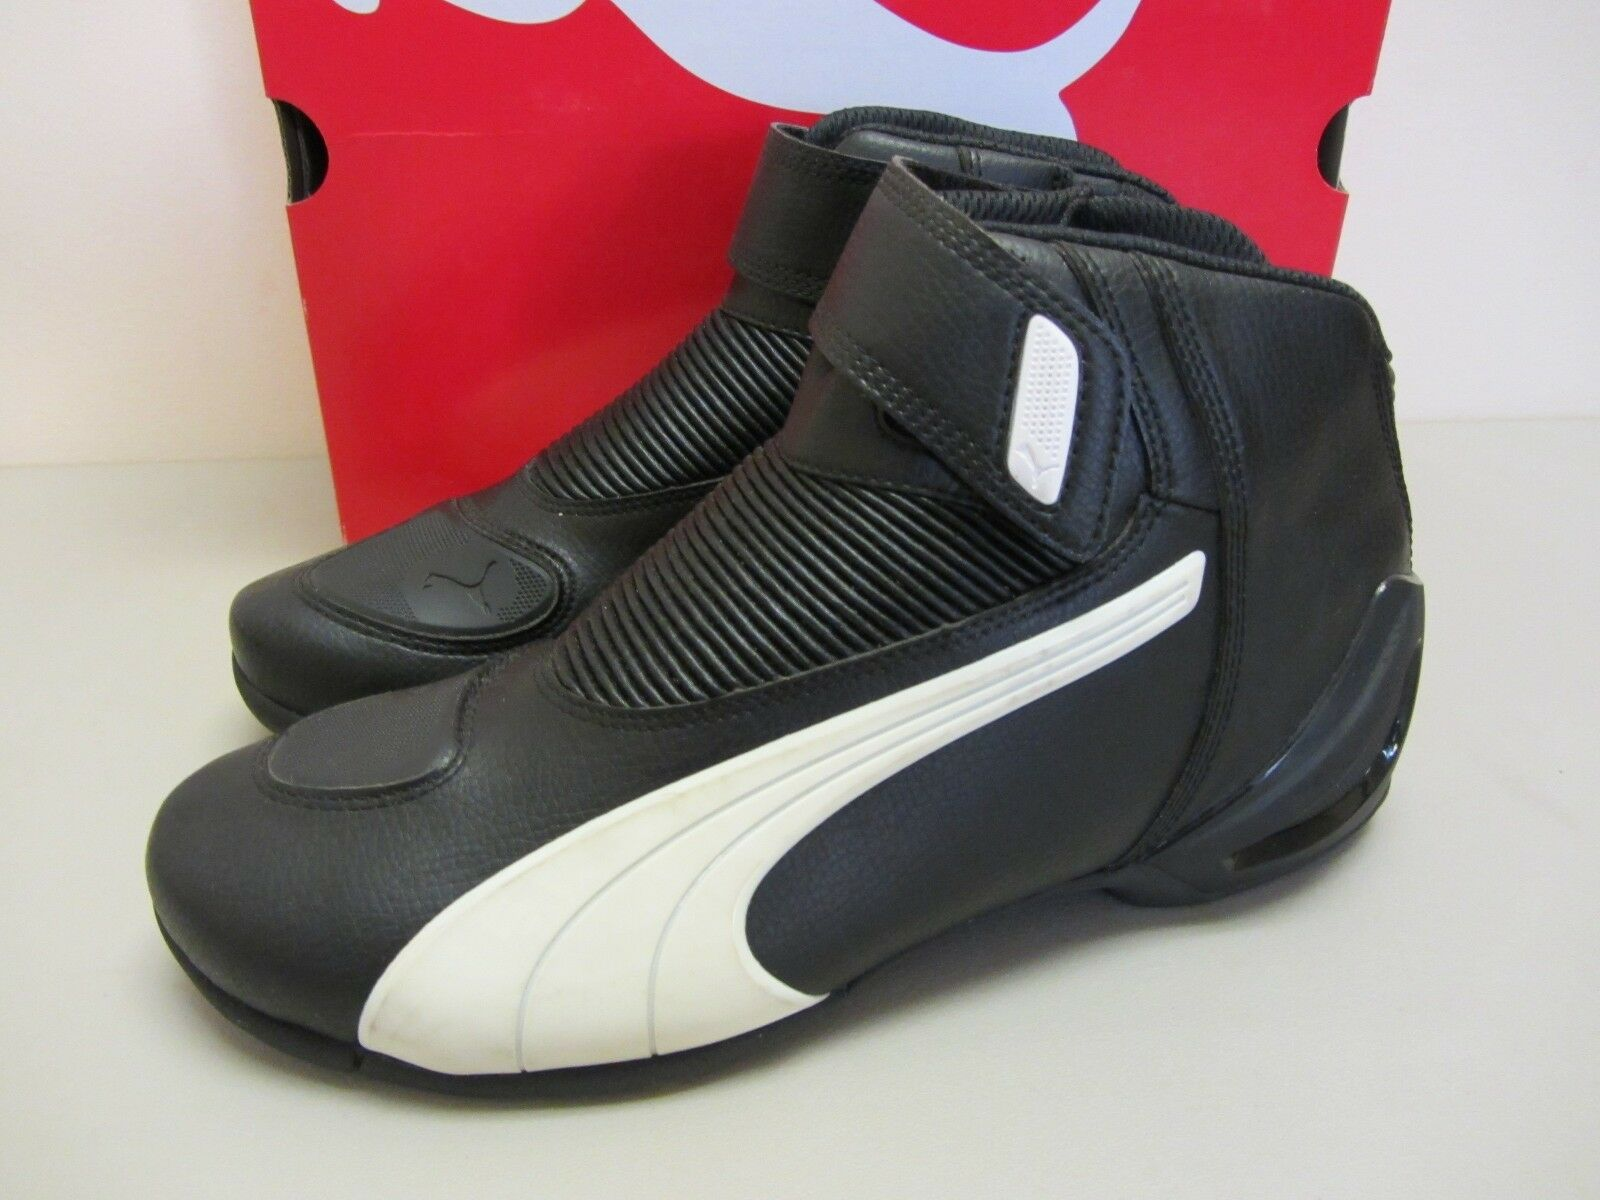 Puma Flat 2 v2 Size 6 US Black w White Motorcycle Shoes CLOSEOUT </p>                     </div> 		  <!--bof Product URL --> 										<!--eof Product URL --> 					<!--bof Quantity Discounts table --> 											<!--eof Quantity Discounts table --> 				</div> 				                       			</dd> 						<dt class=